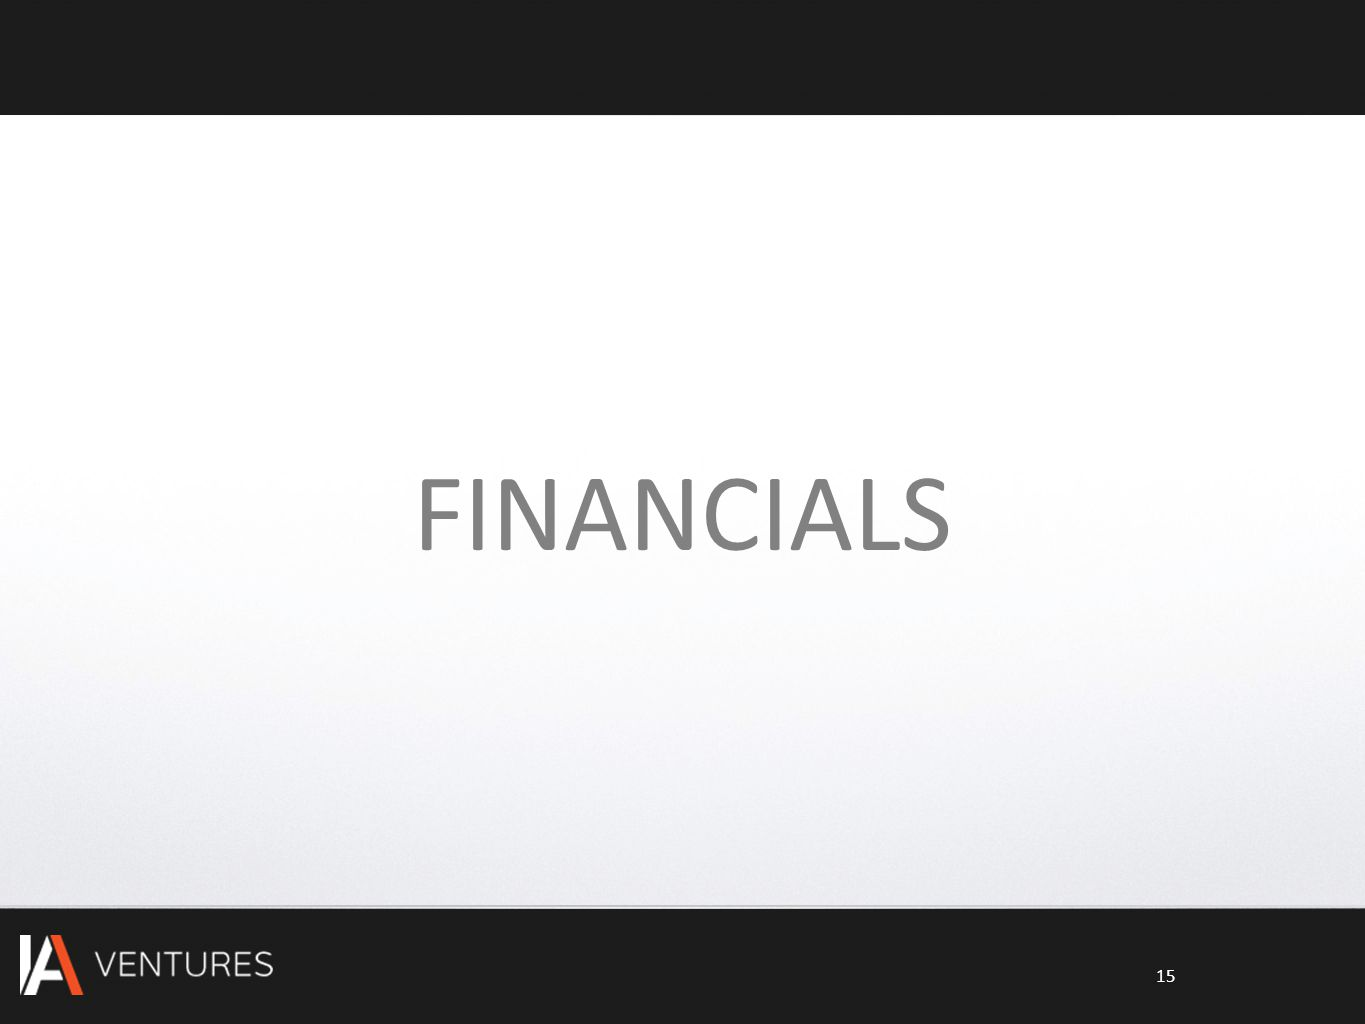 FINANCIALS 15